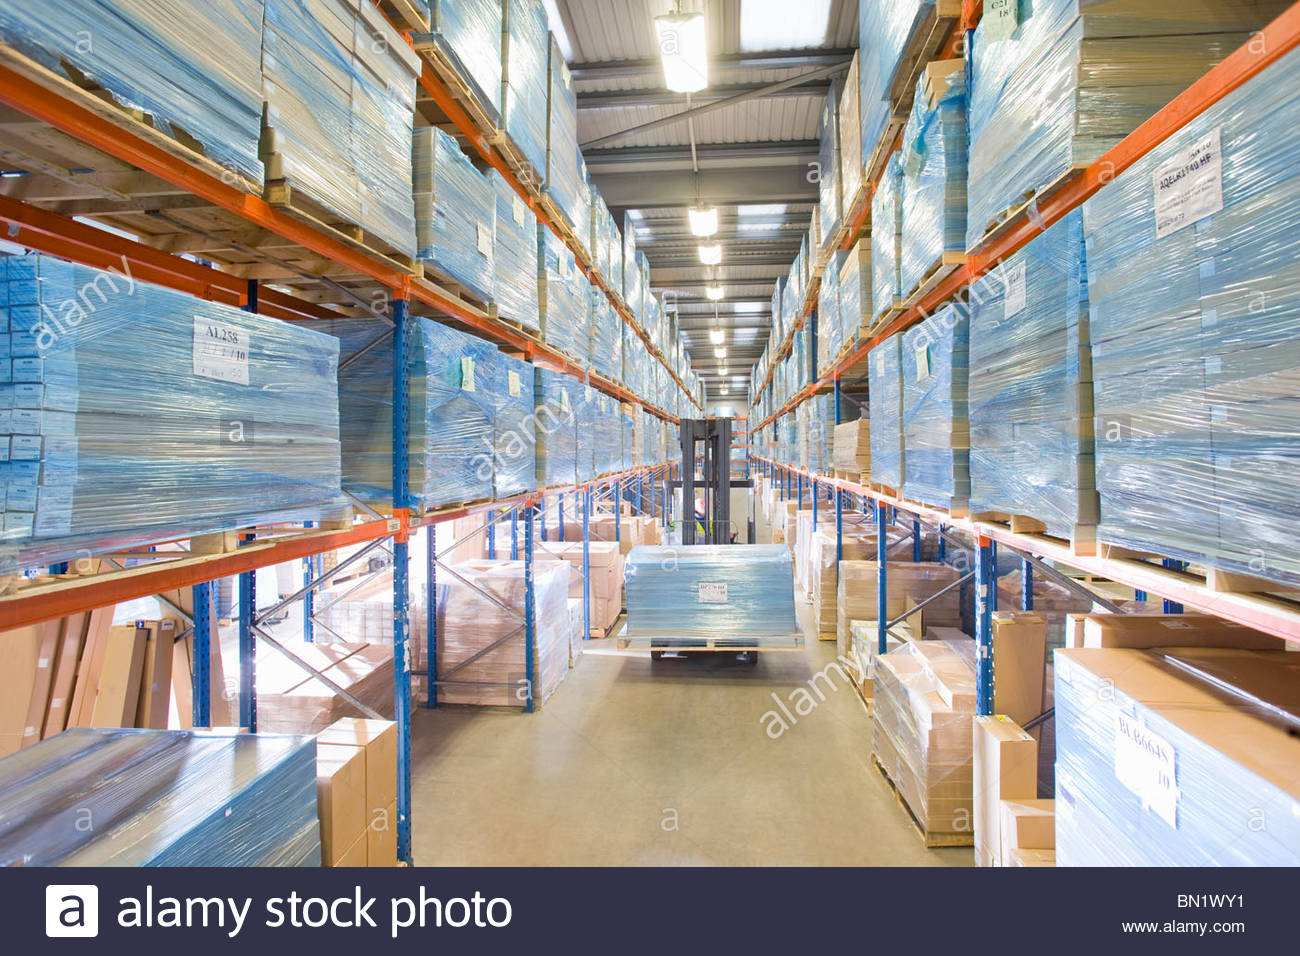 Warehouse worker moving pallet of boxes on forklift - Stock Image